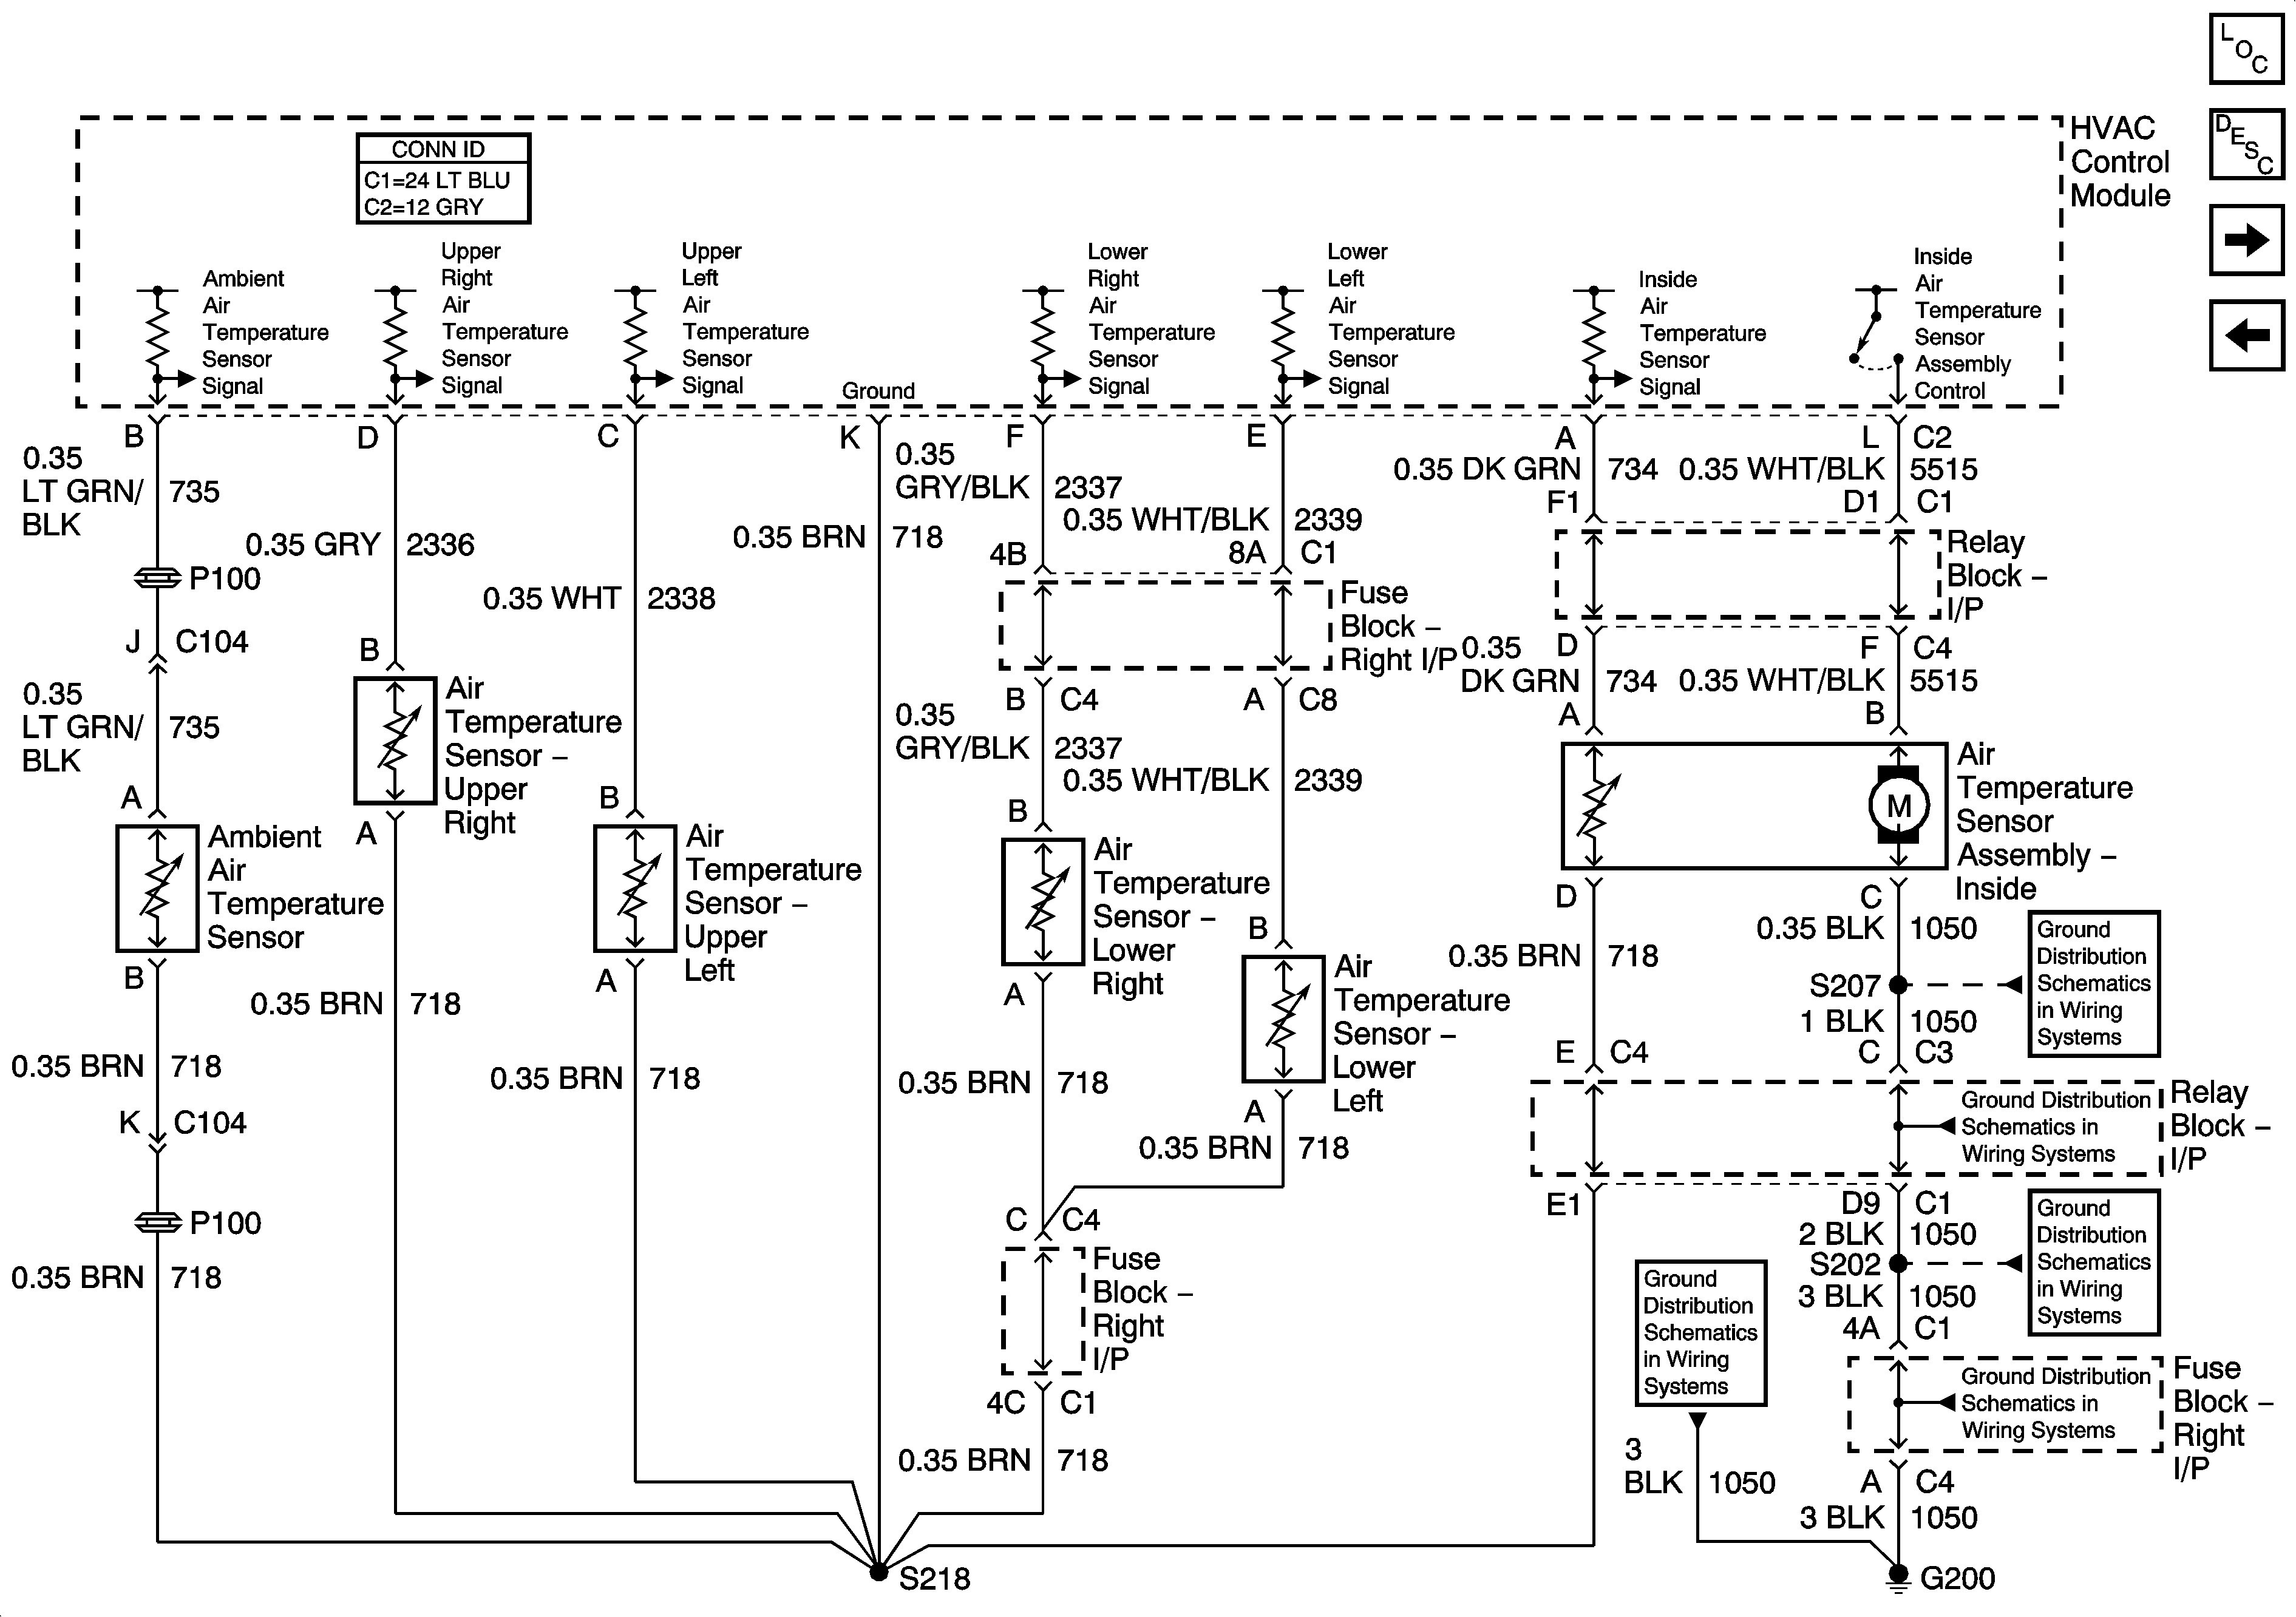 2005 Trailblazer Stereo Wiring Diagram Gg 8259] 2004 Chevrolet Trailblazer Radio Wiring Diagram Of 2005 Trailblazer Stereo Wiring Diagram